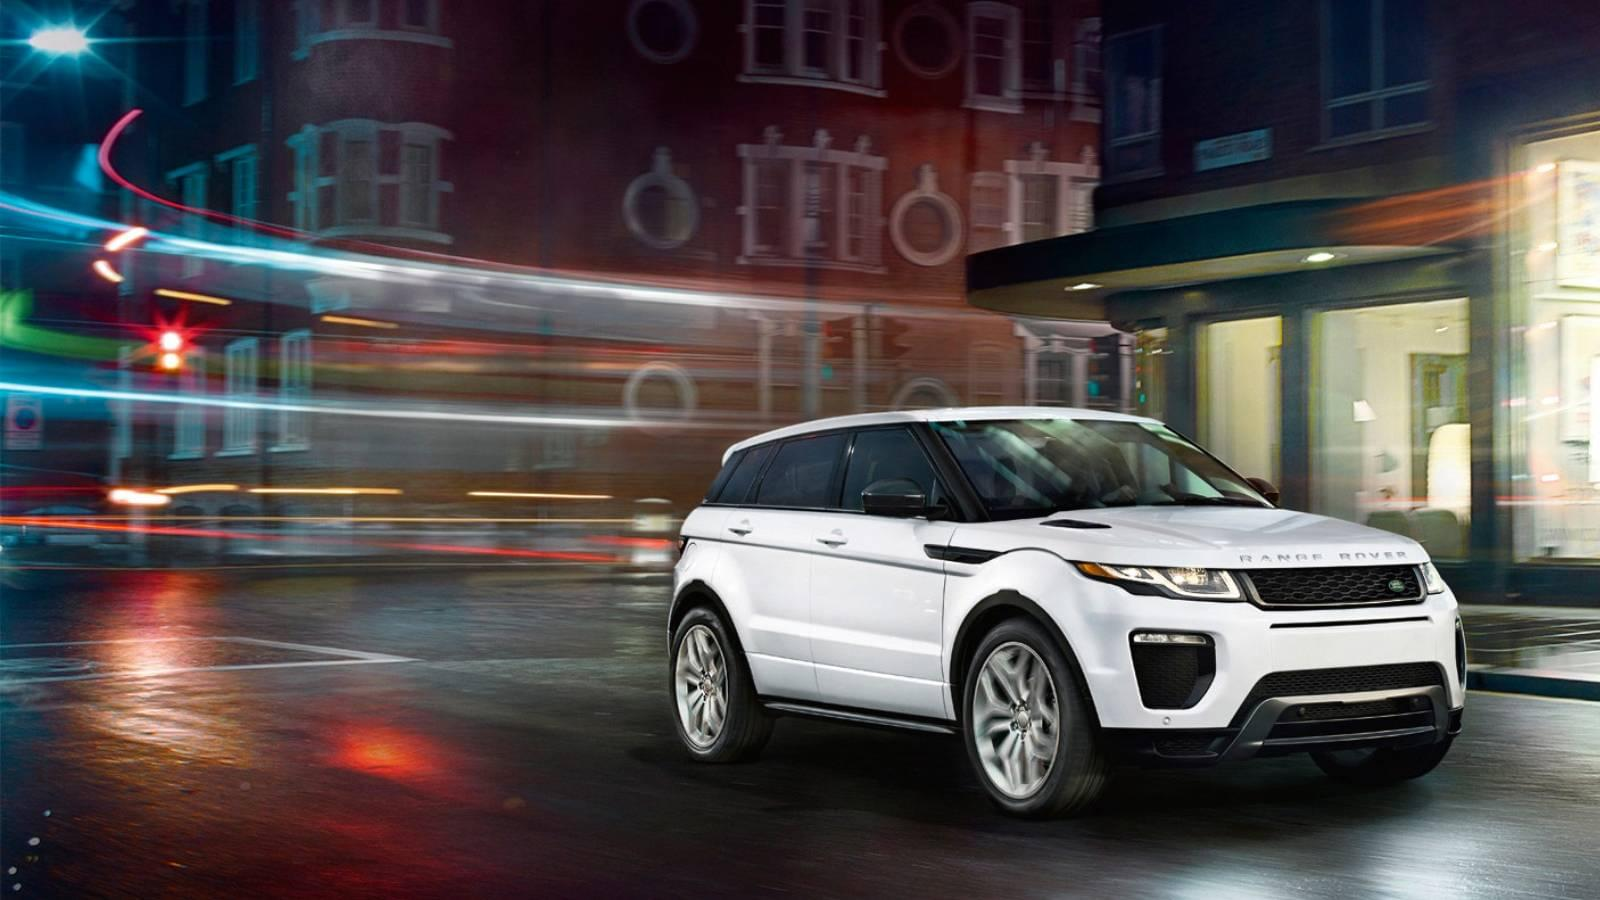 Land Rover Bellevue >> Land Rover Bellevue New Used Cars In Bellevue Wa